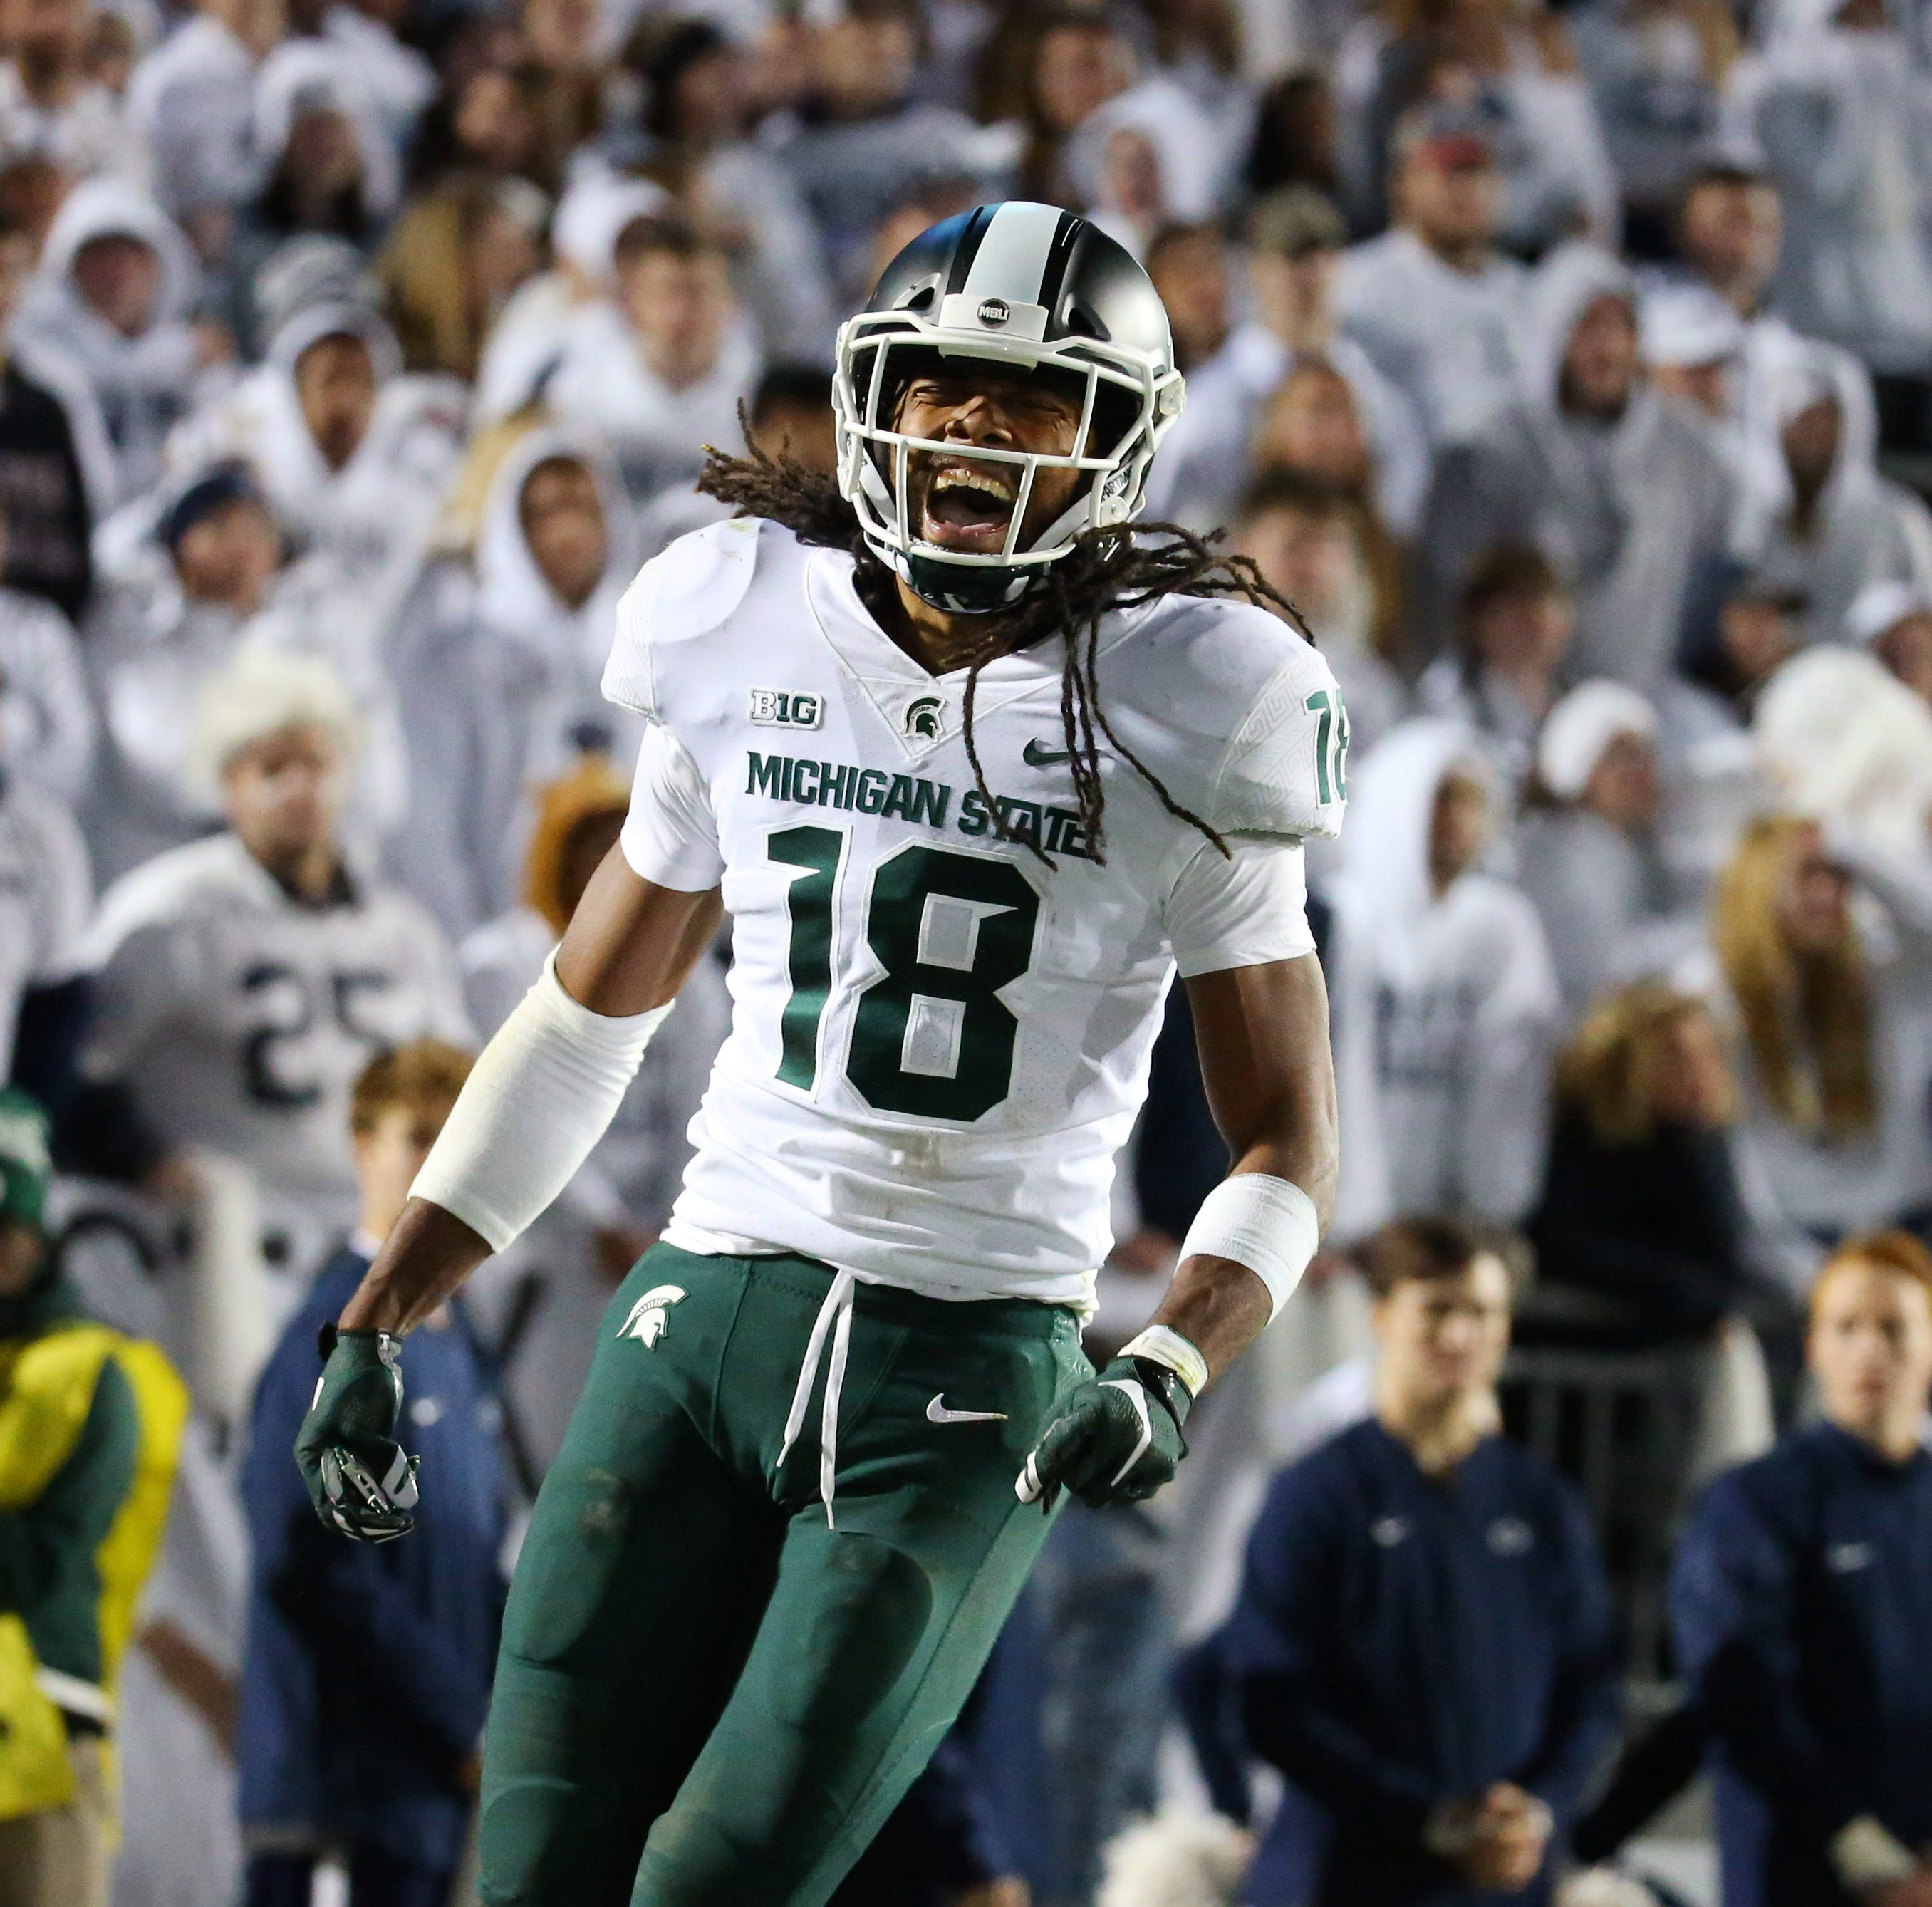 Michigan State reactions: Couches burning after Penn State win